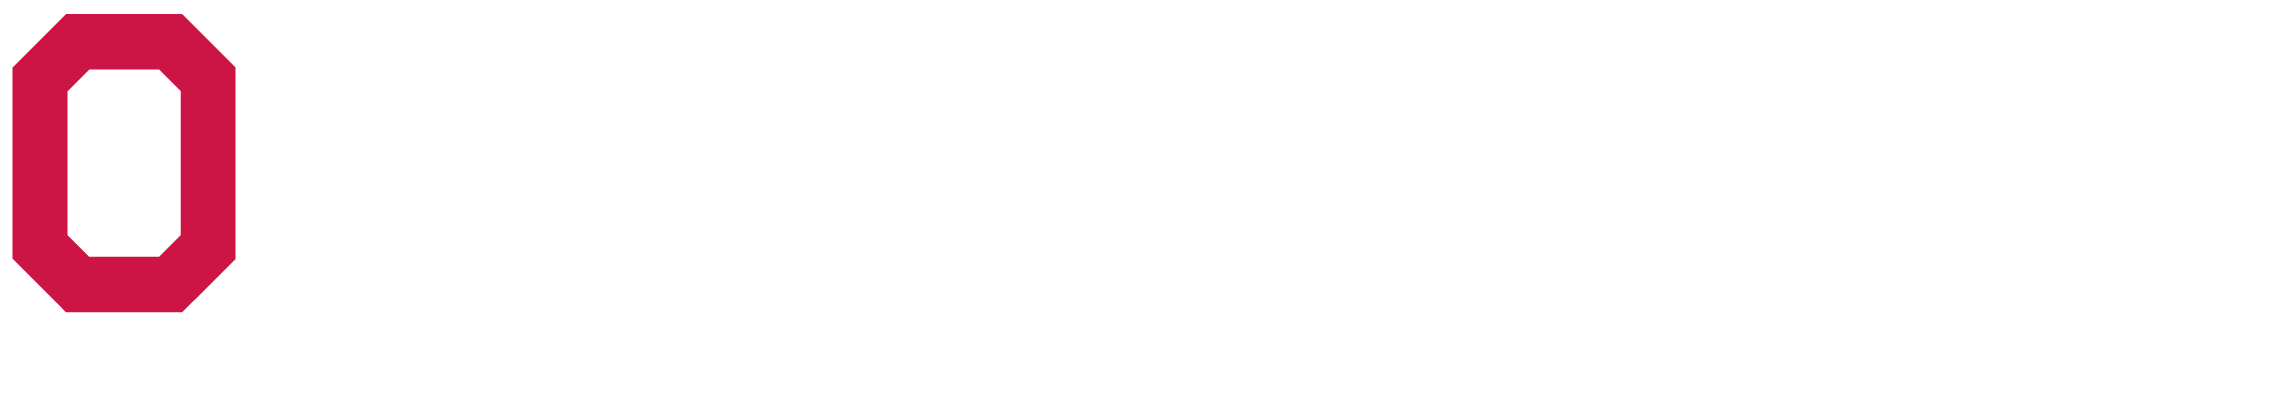 Ohio State University - College of Food, Agricultural, and Environmental Sciences